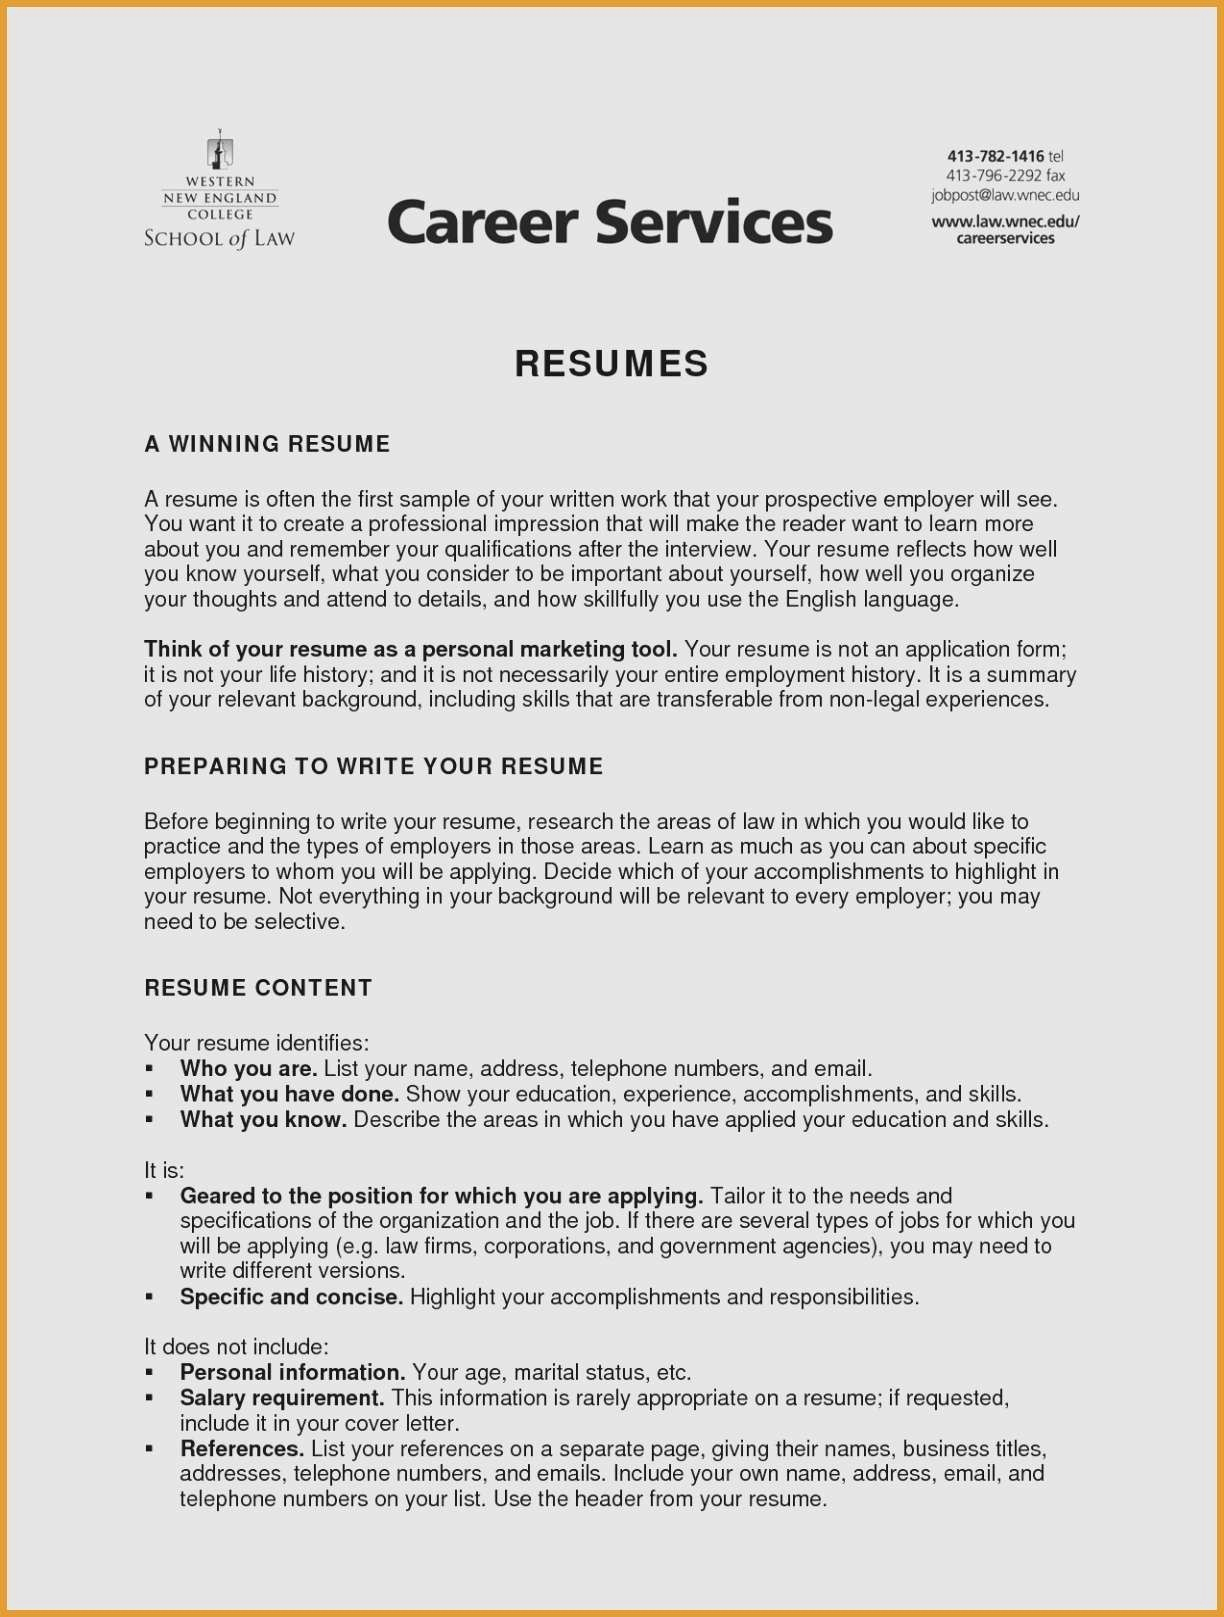 Marketing Skills Resume - Entry Level Marketing Resume Type A Resume Beautiful New Entry Level